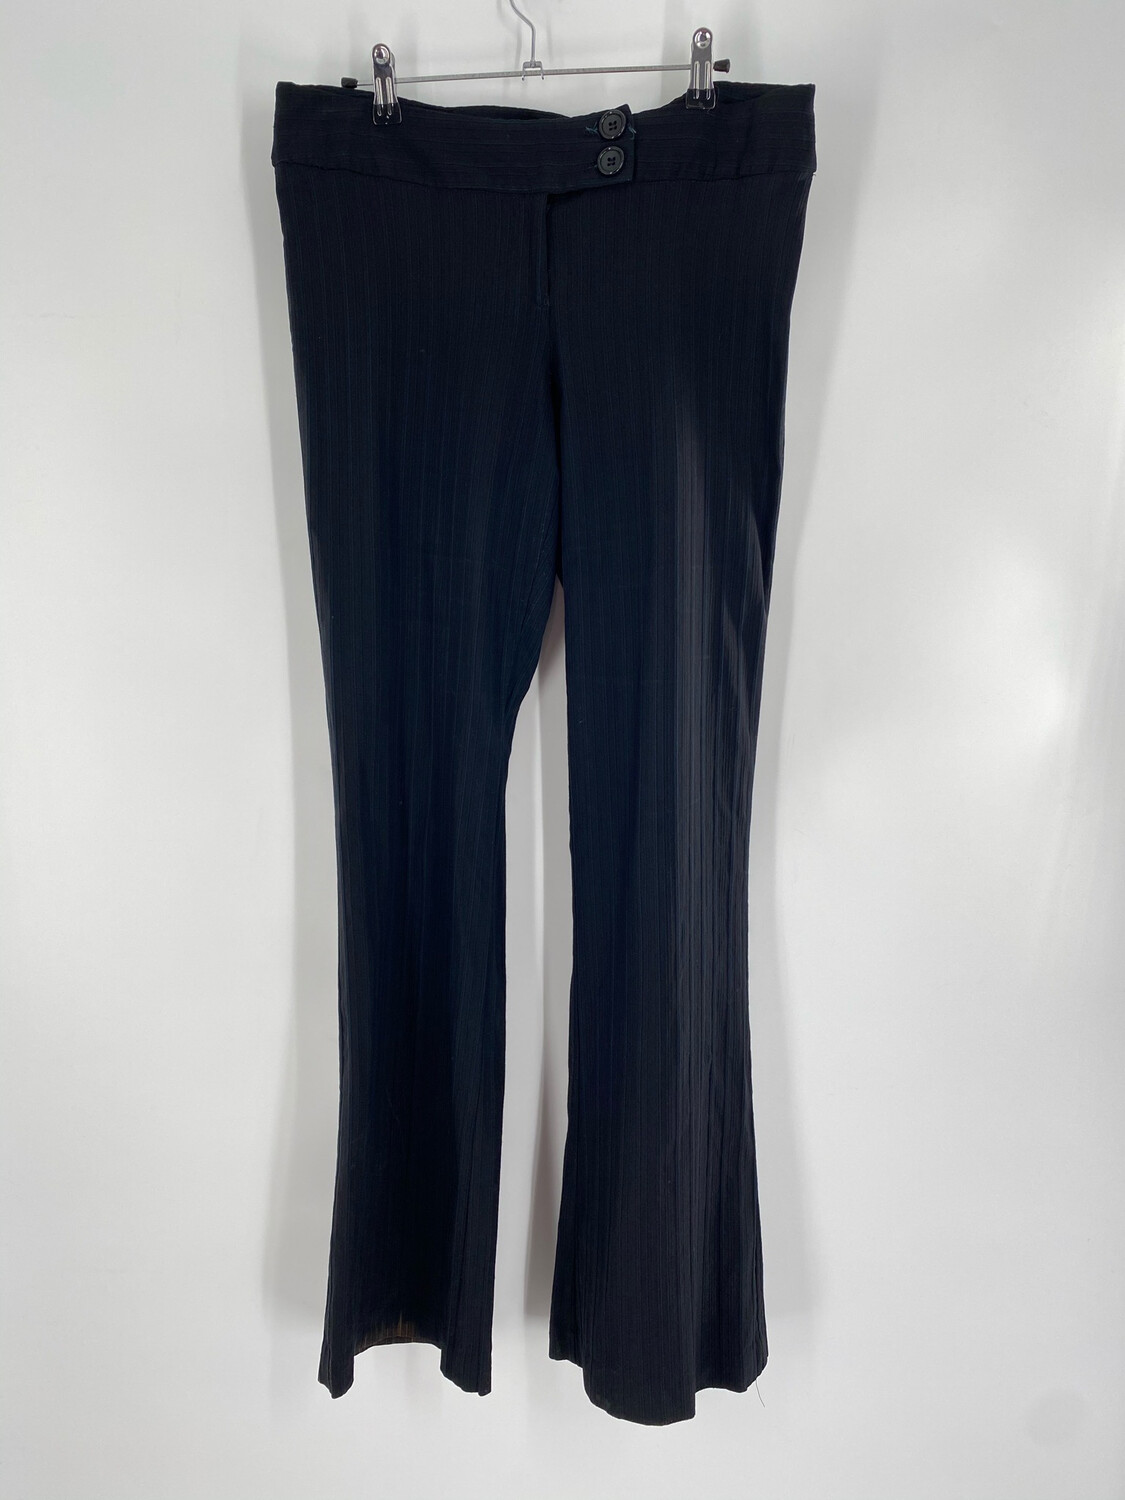 Rave Vintage Low-Waisted Flare Pants Size L